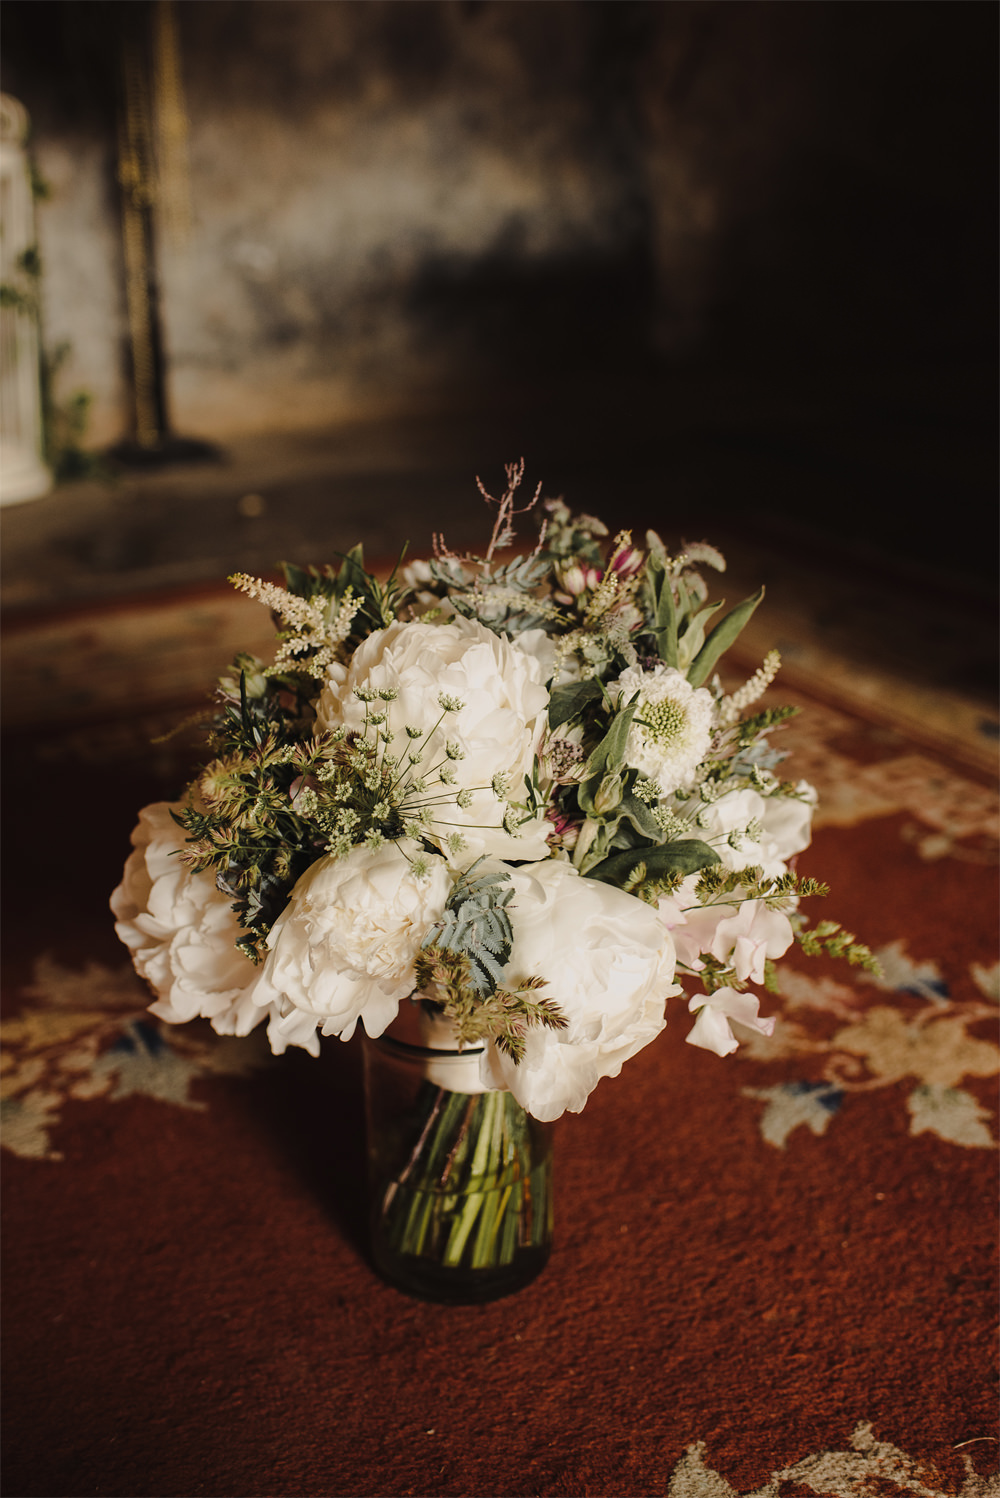 Bouquet Flowers Bride Bridal White Peony Peonies Foliage Greenery Cambo Estate Wedding Anna Urban Wedding Photography